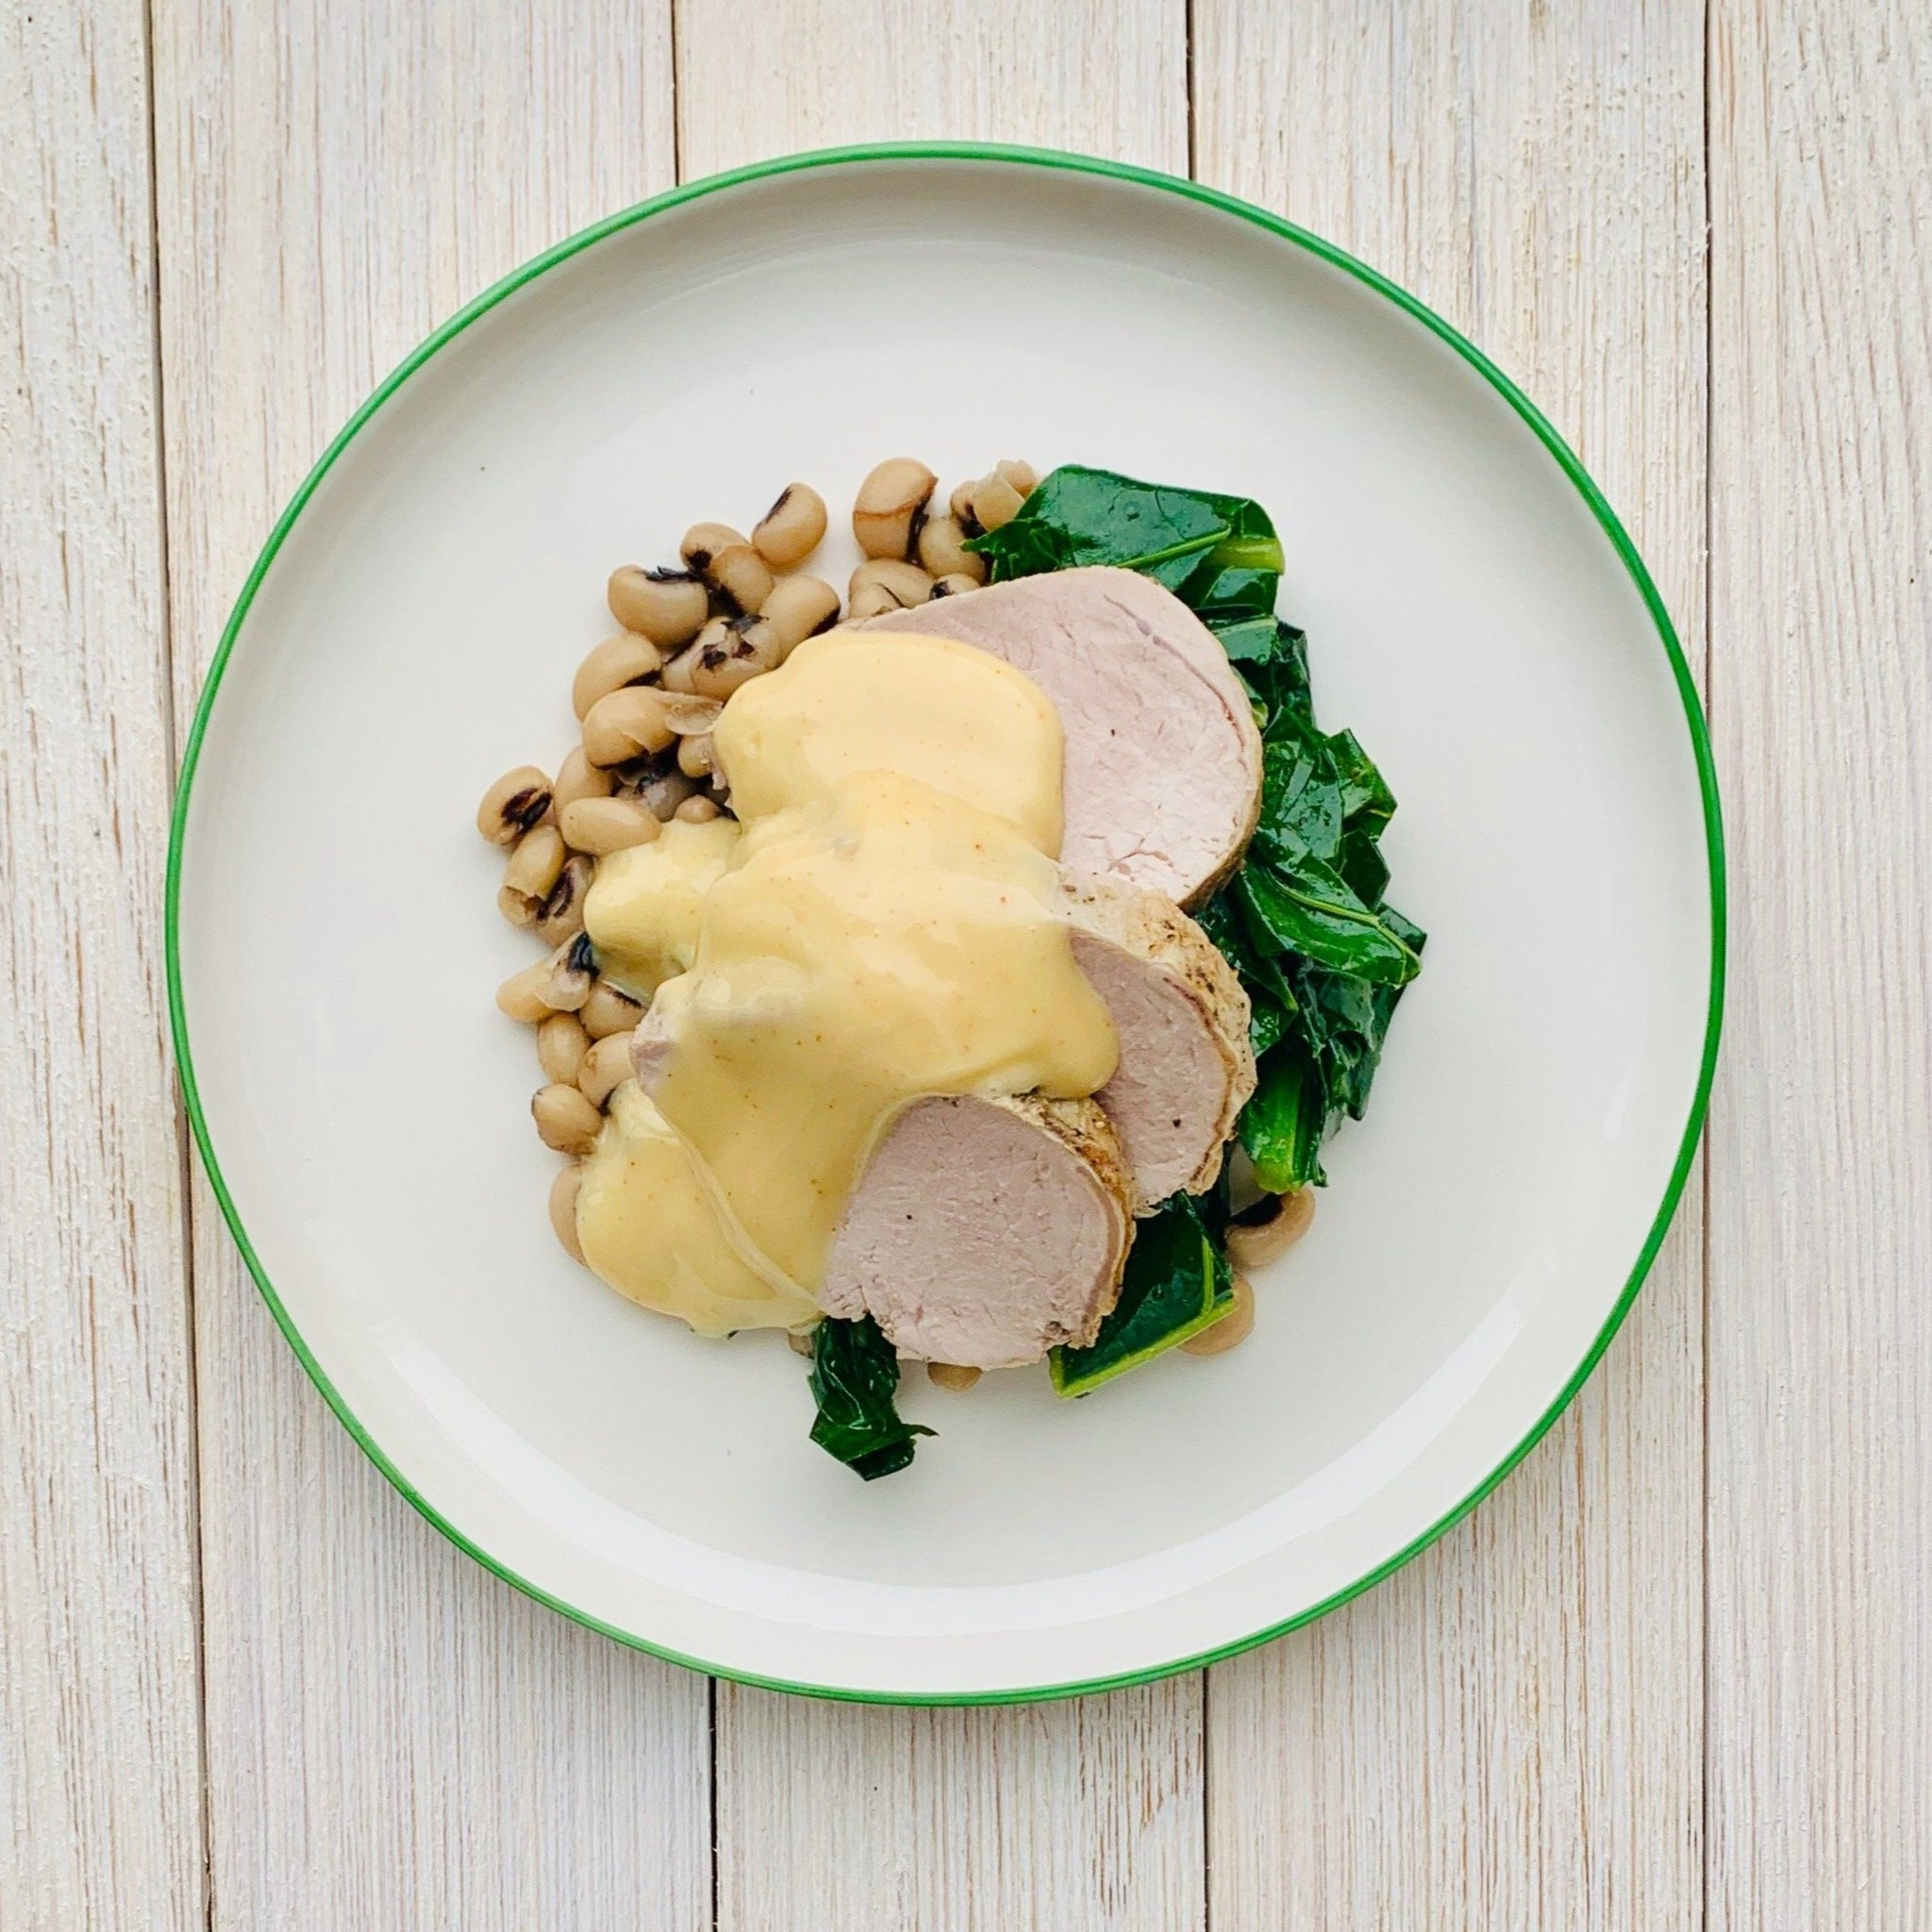 Smoked Pork Tenderloin with Collard Greens & Black Eyed Peas (GF)